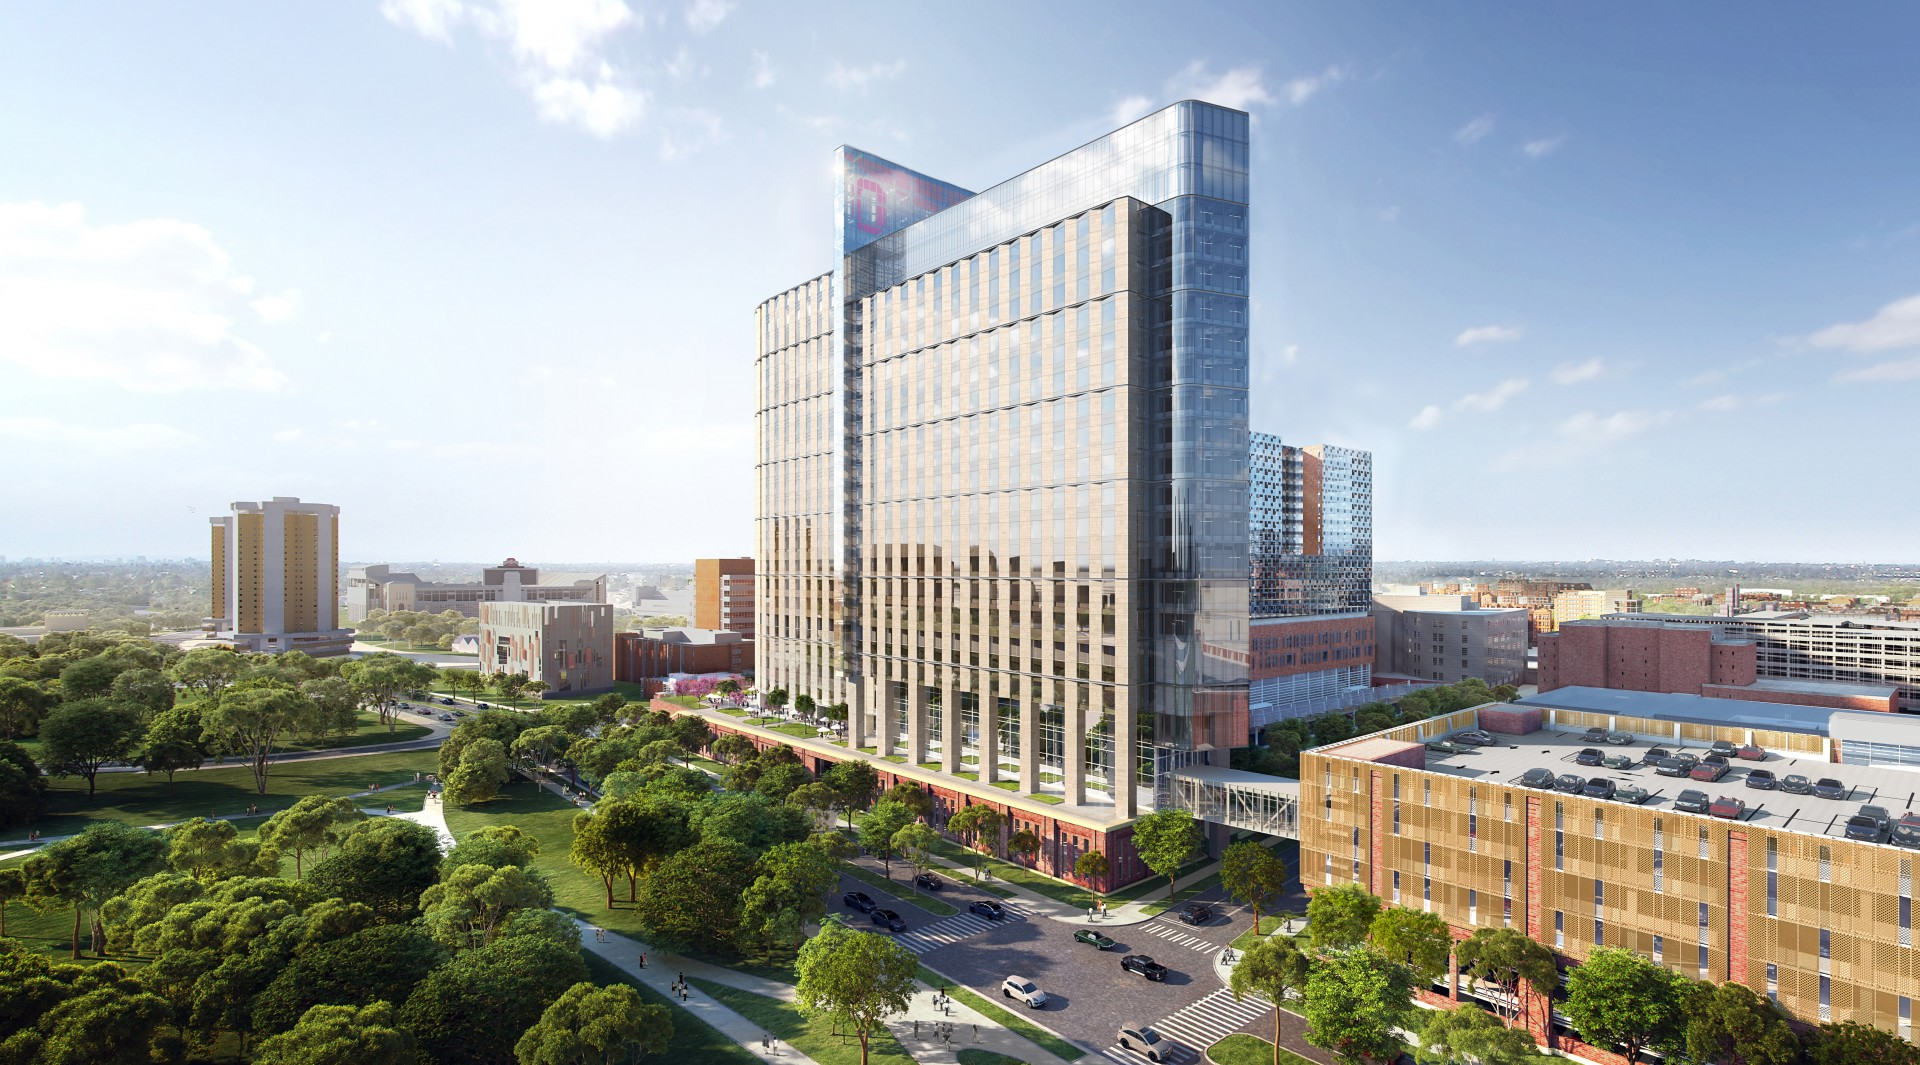 Rendering of the new inpatient hospital at The Ohio State University Wexner Medical Center